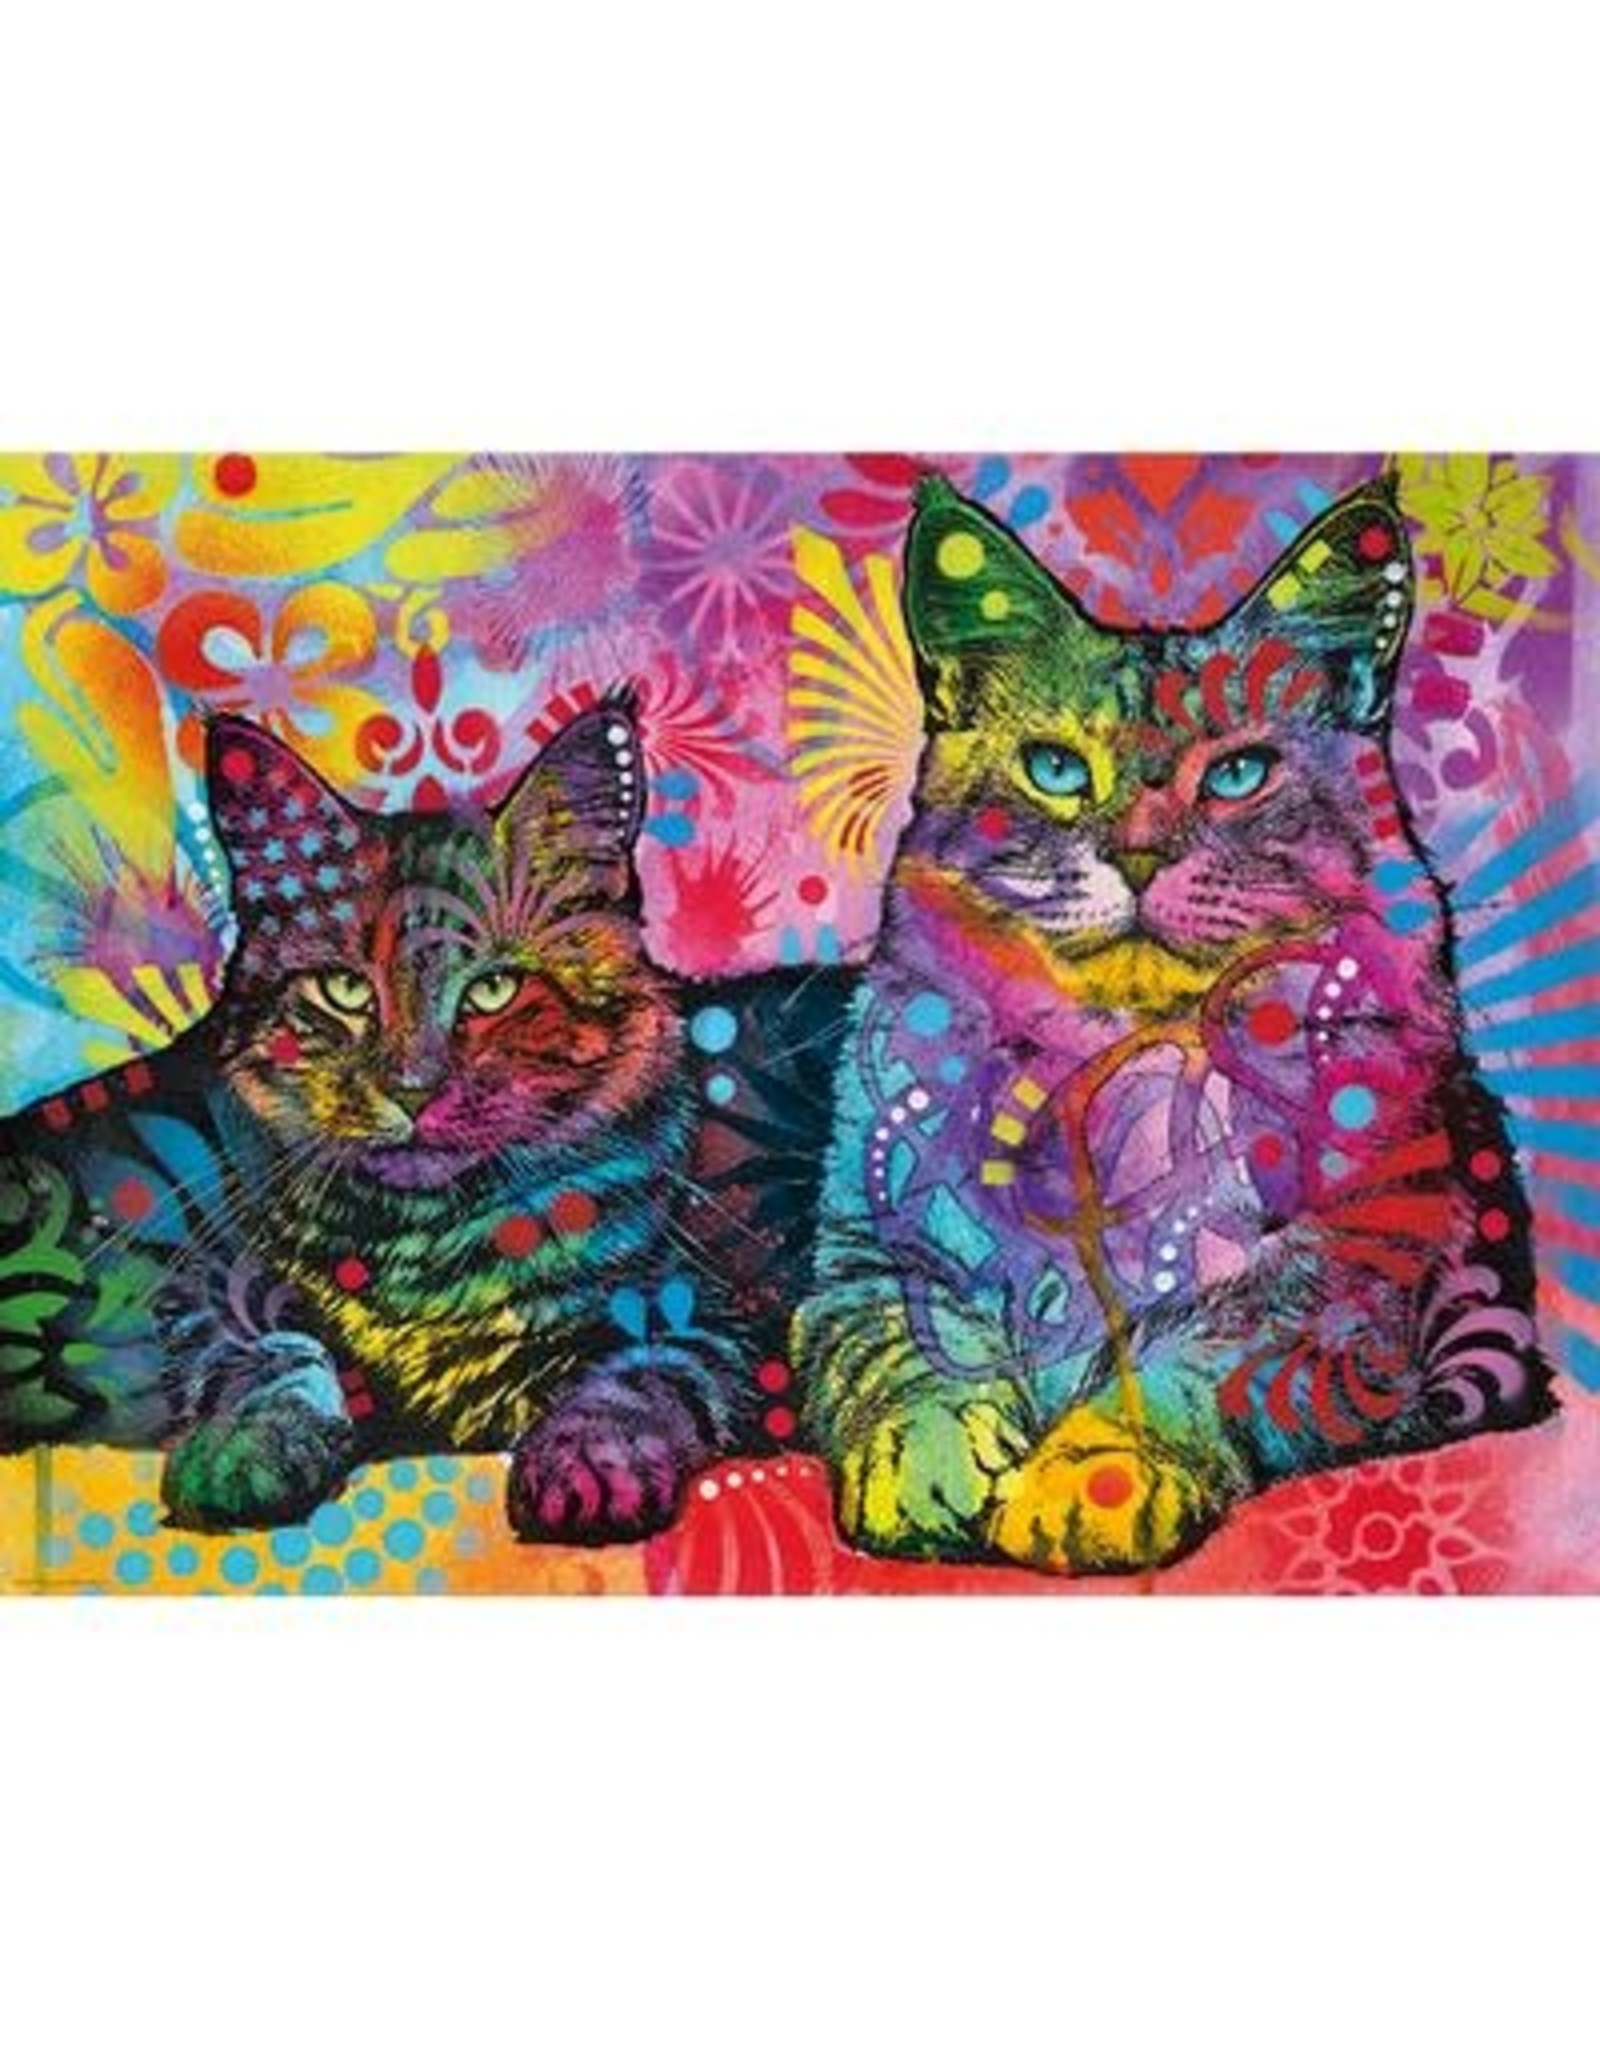 Heye Devoted 2 Cats 1000pc Puzzle